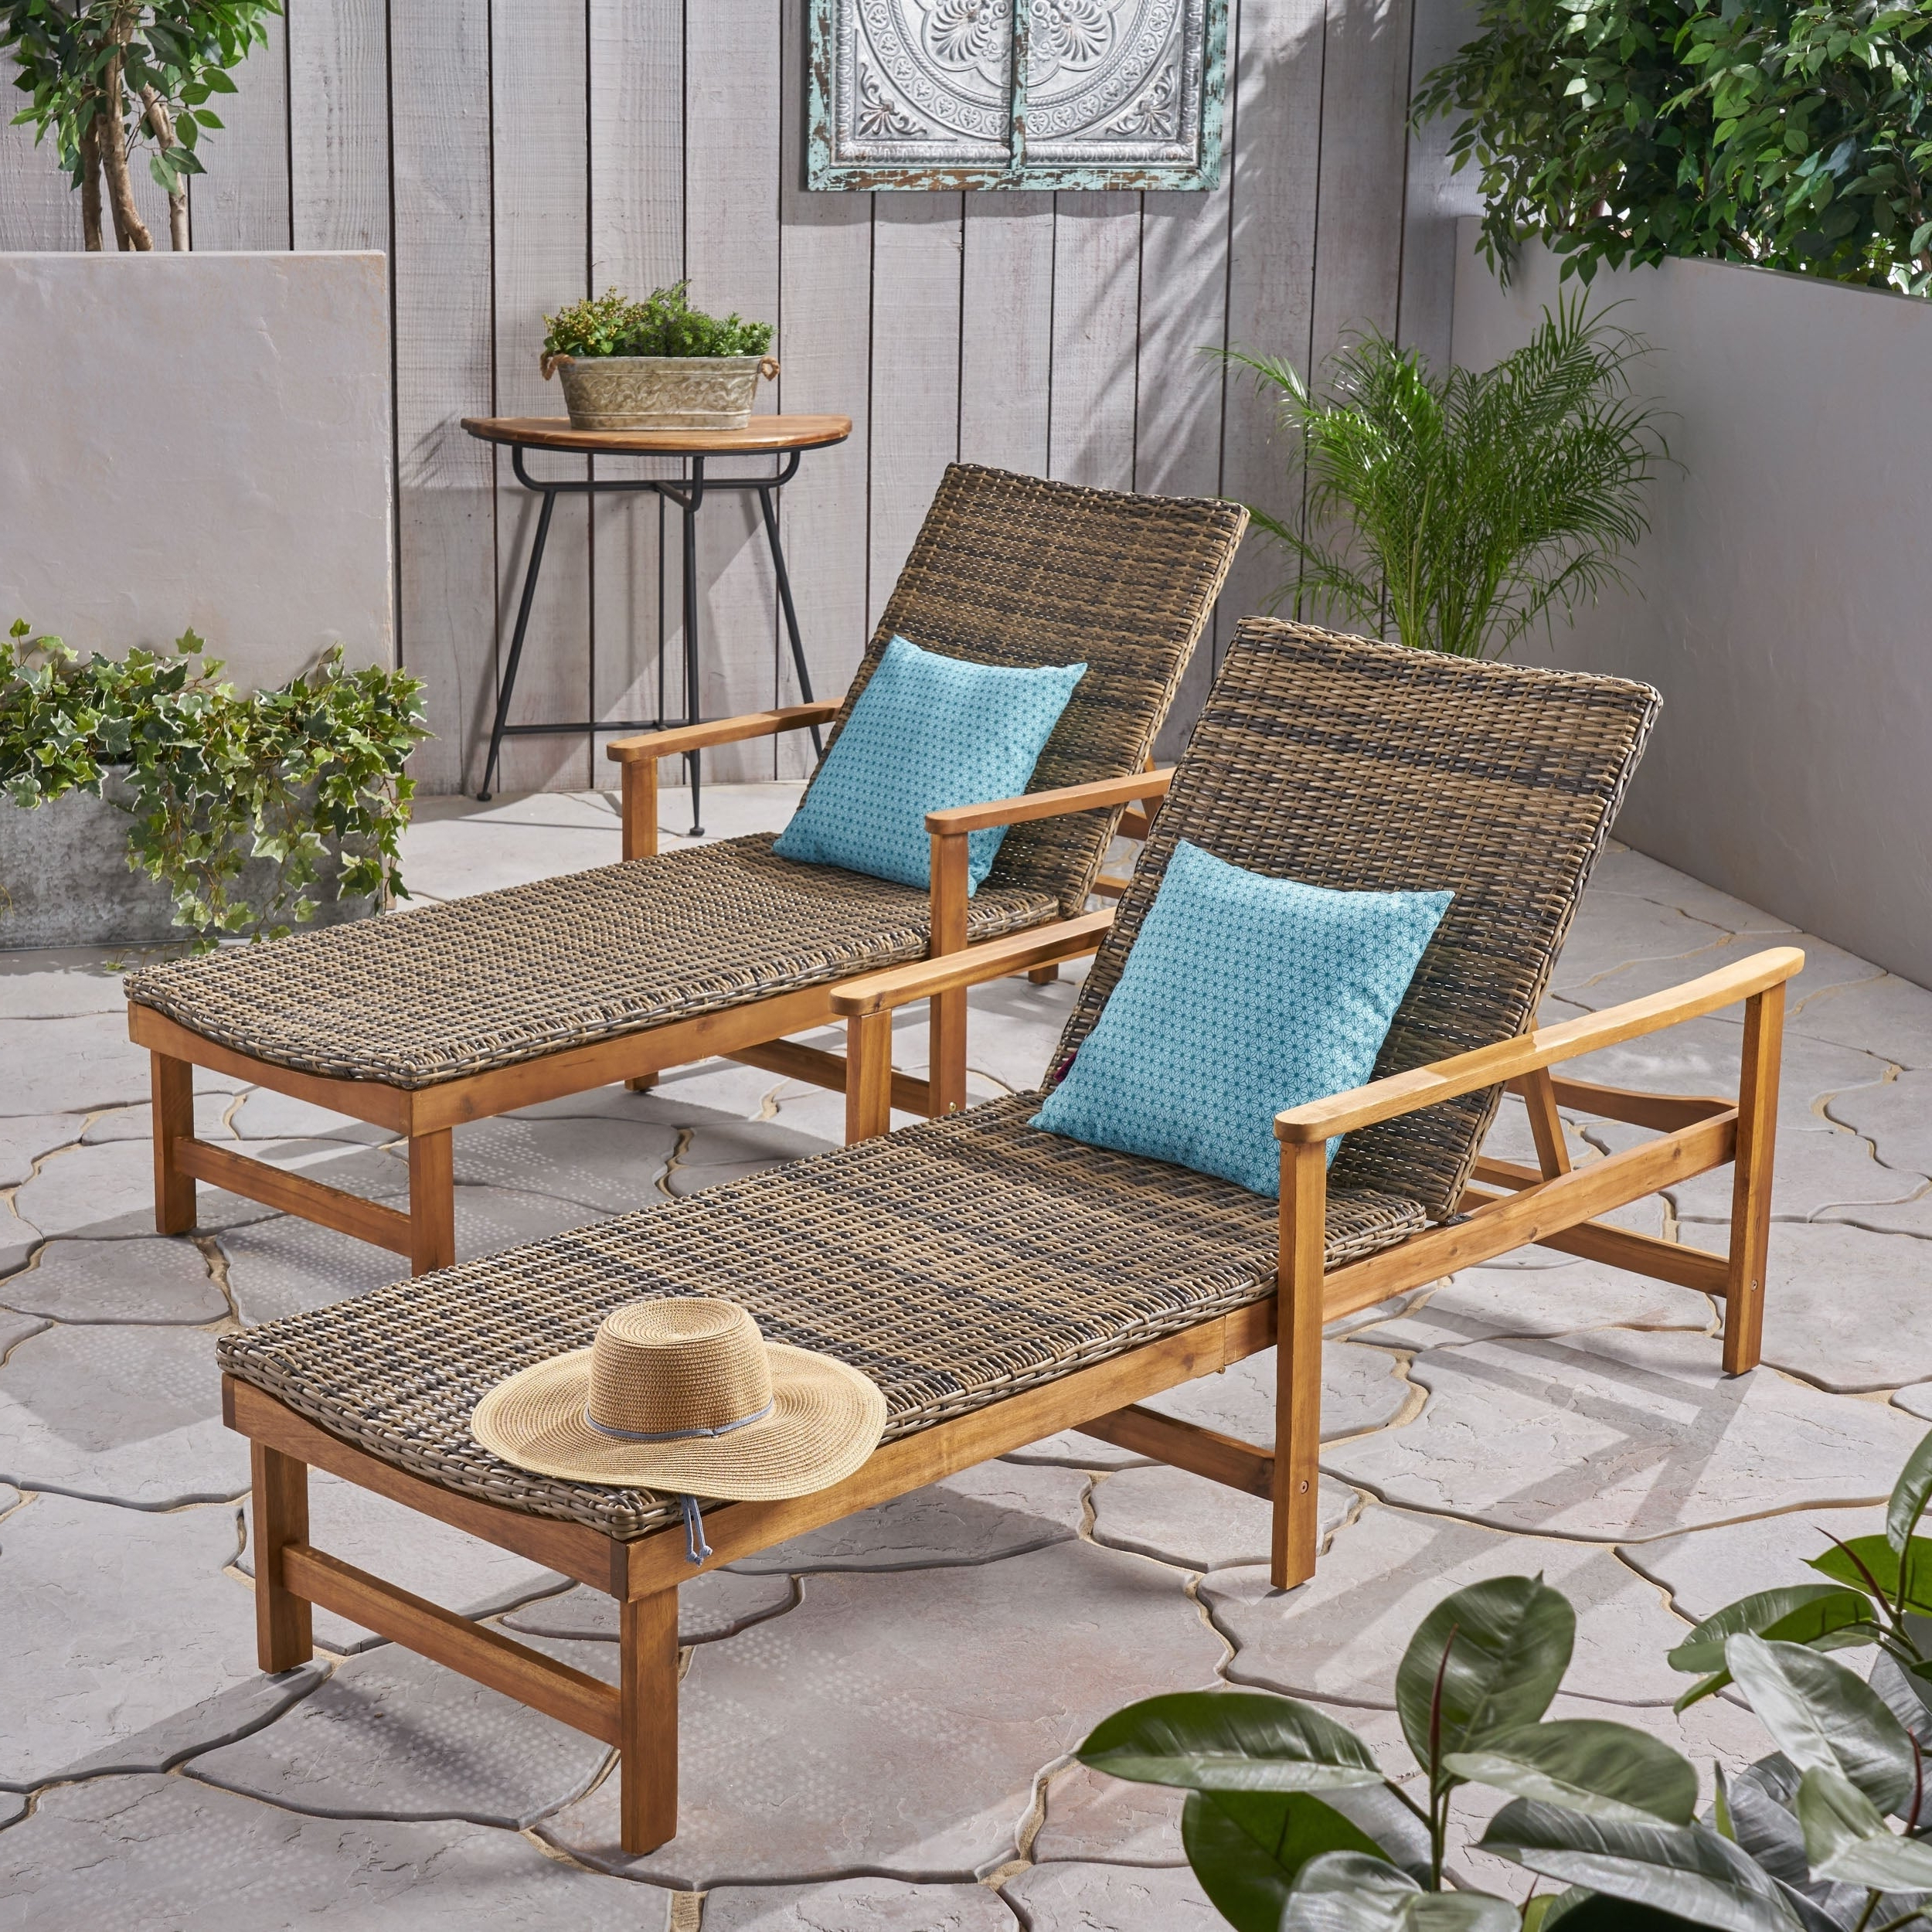 Best And Newest Outdoor Living Manteca Ash Grey Acacia Wood Lounge Chairs Throughout Hampton Outdoor Chaise Lounges Acacia Wood And Wicker (Set Of 2) Christopher Knight Home (View 2 of 25)